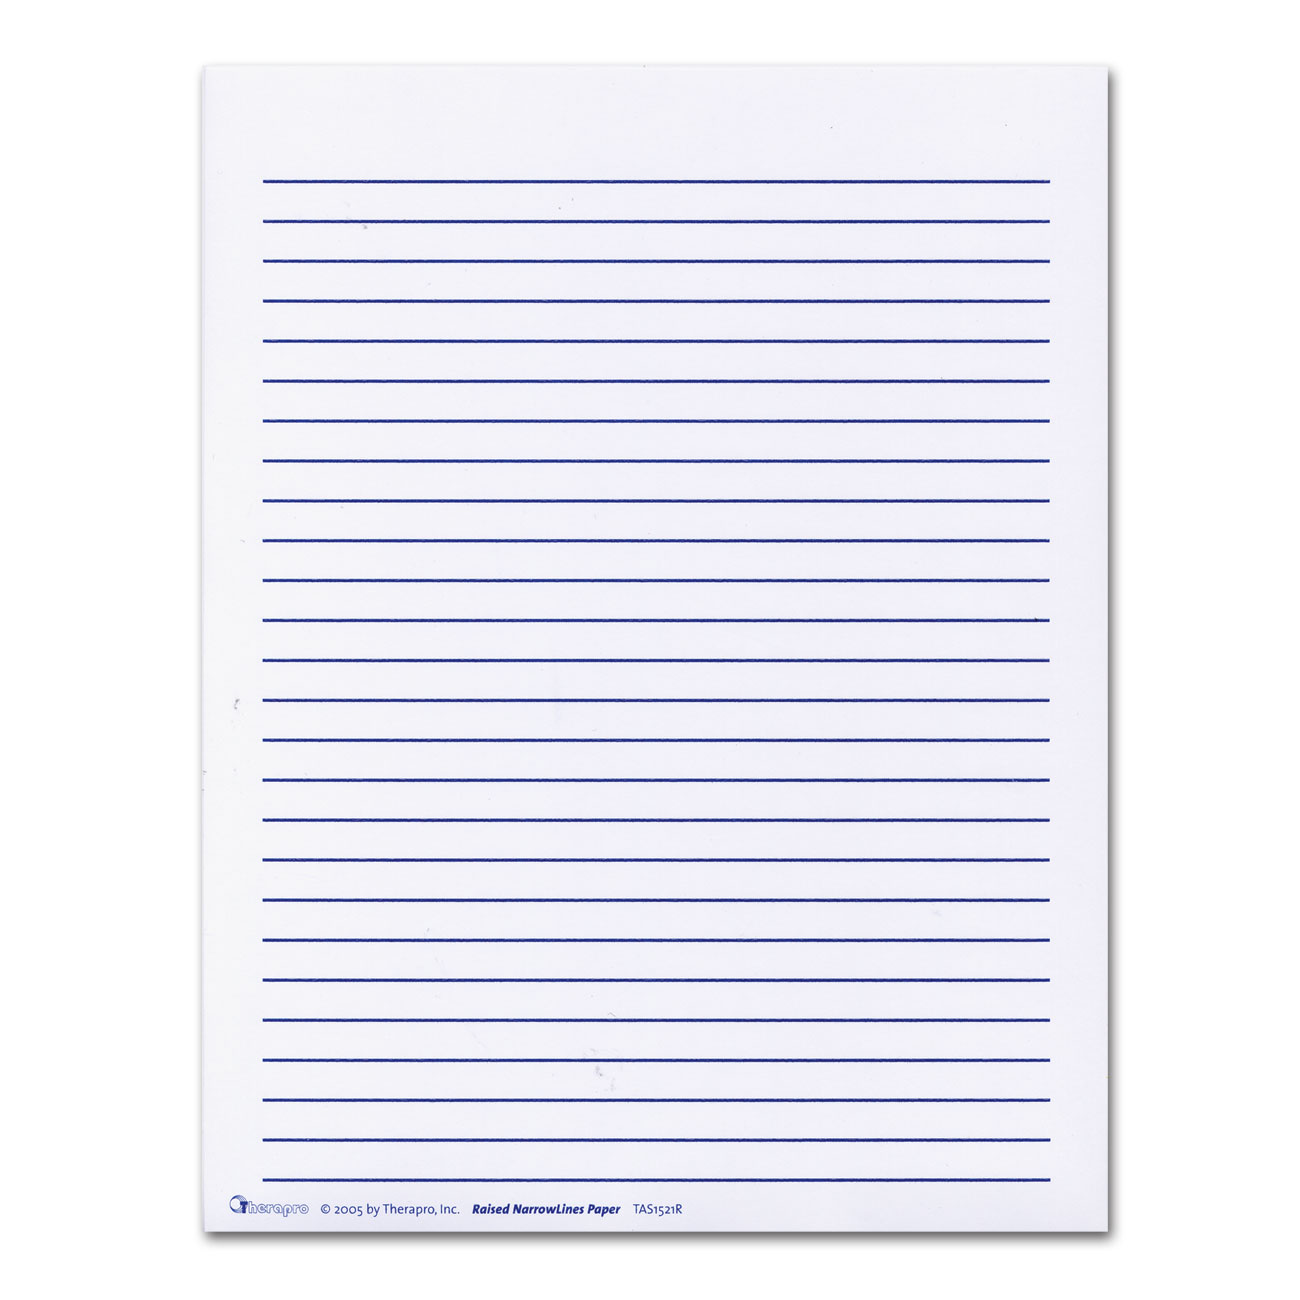 Raised Lines Paper - Narrow Price: $12.99